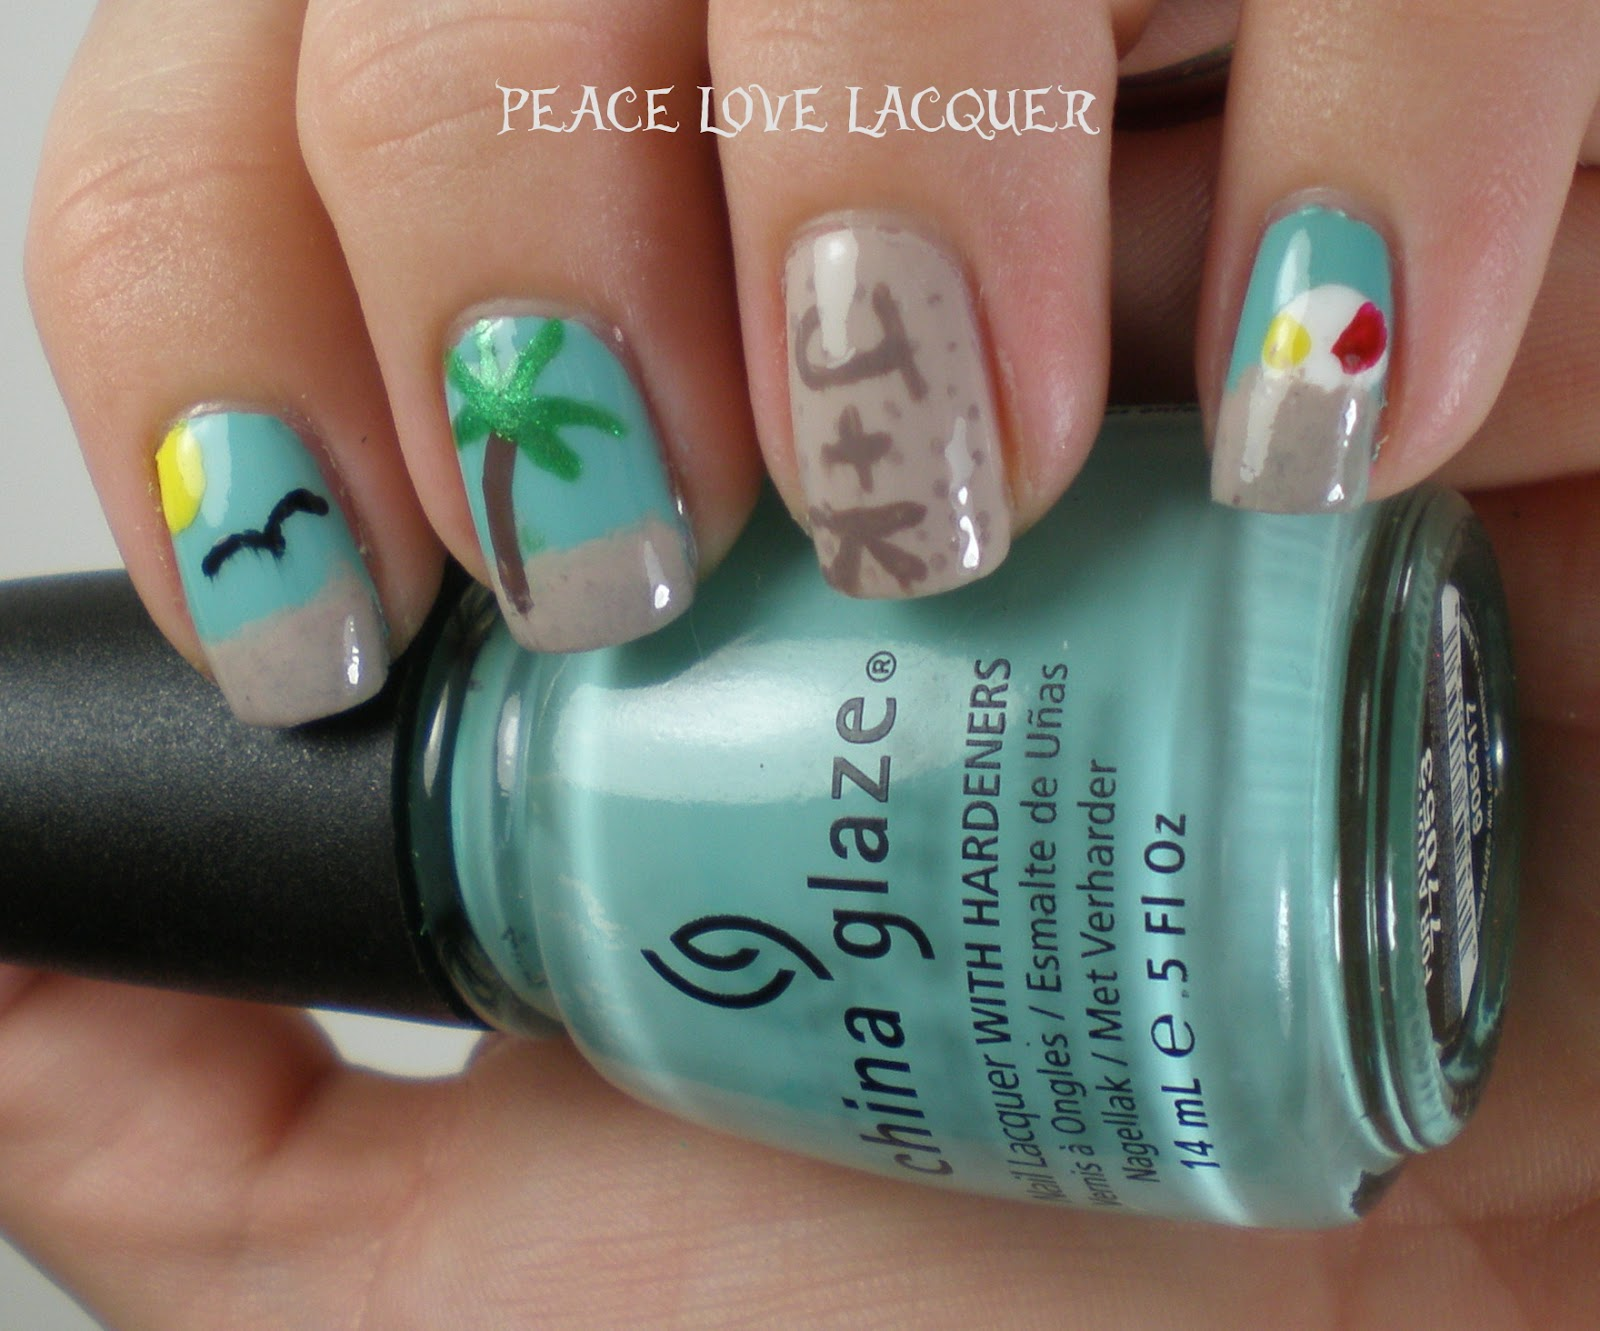 Peace love lacquer falling forward nail art challenge day 2 falling forward nail art challenge day 2 beachtropical prinsesfo Gallery